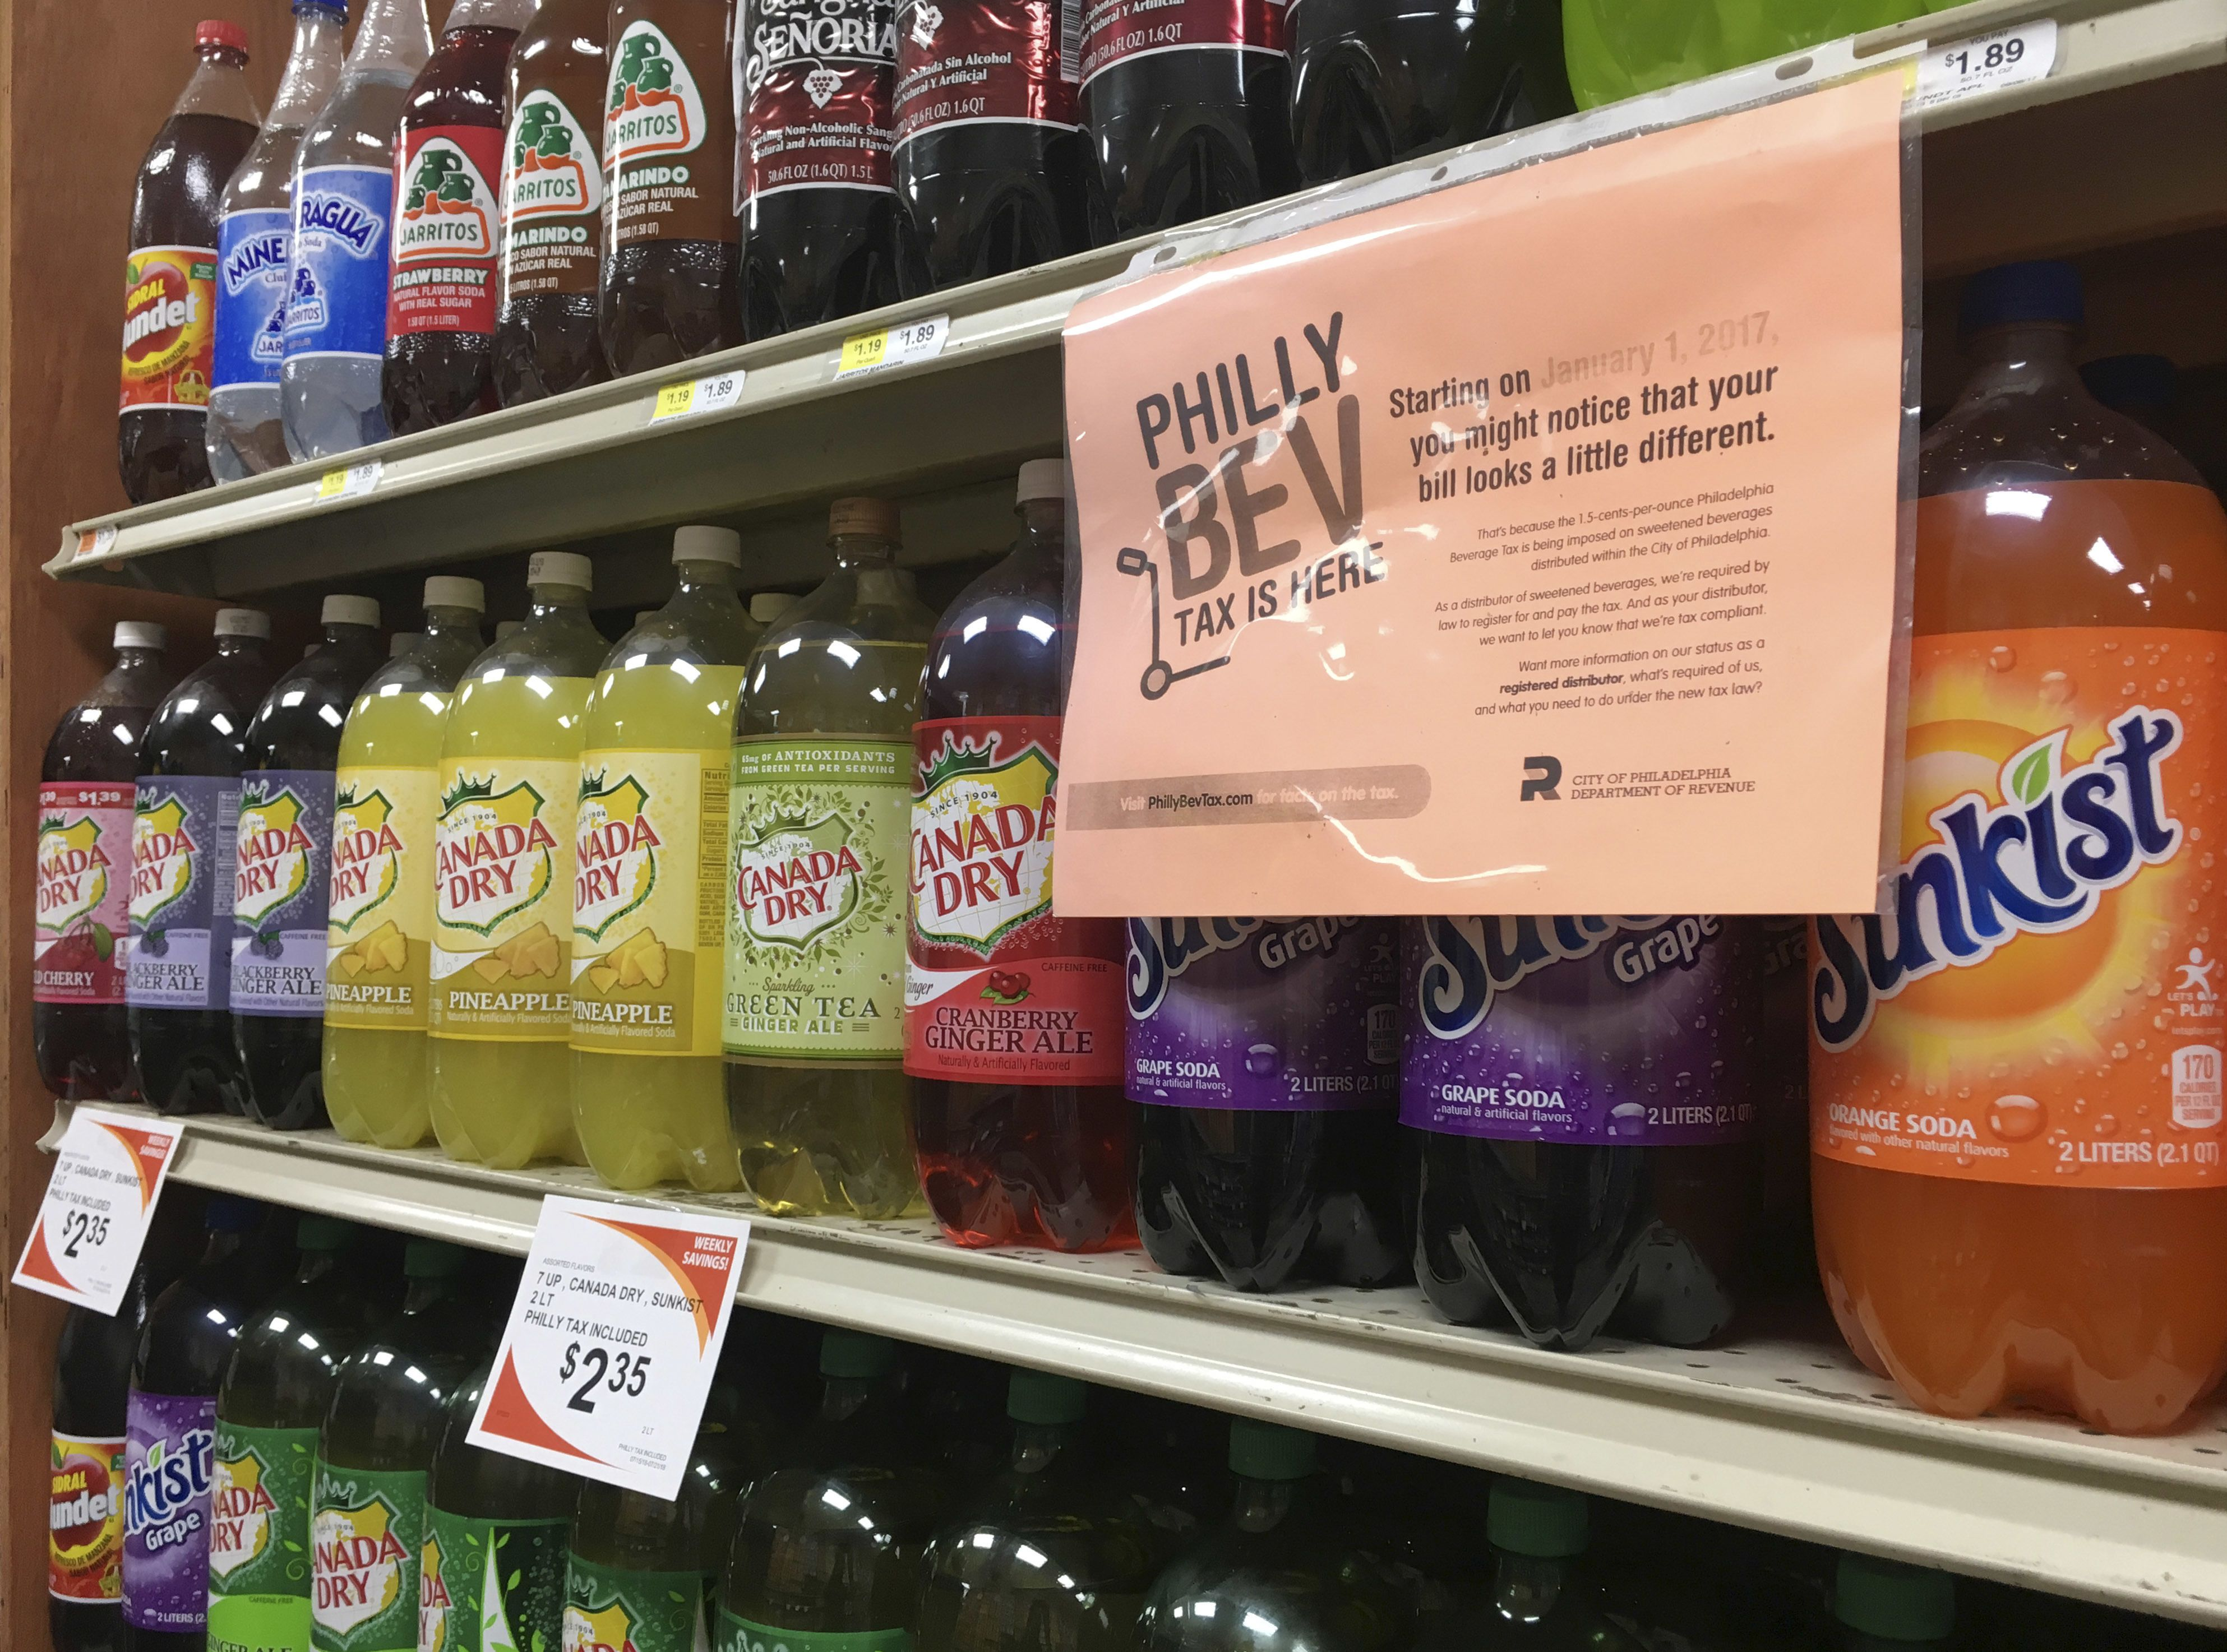 Sugary drink sales fall 38% after Philadelphia levied soda tax: study